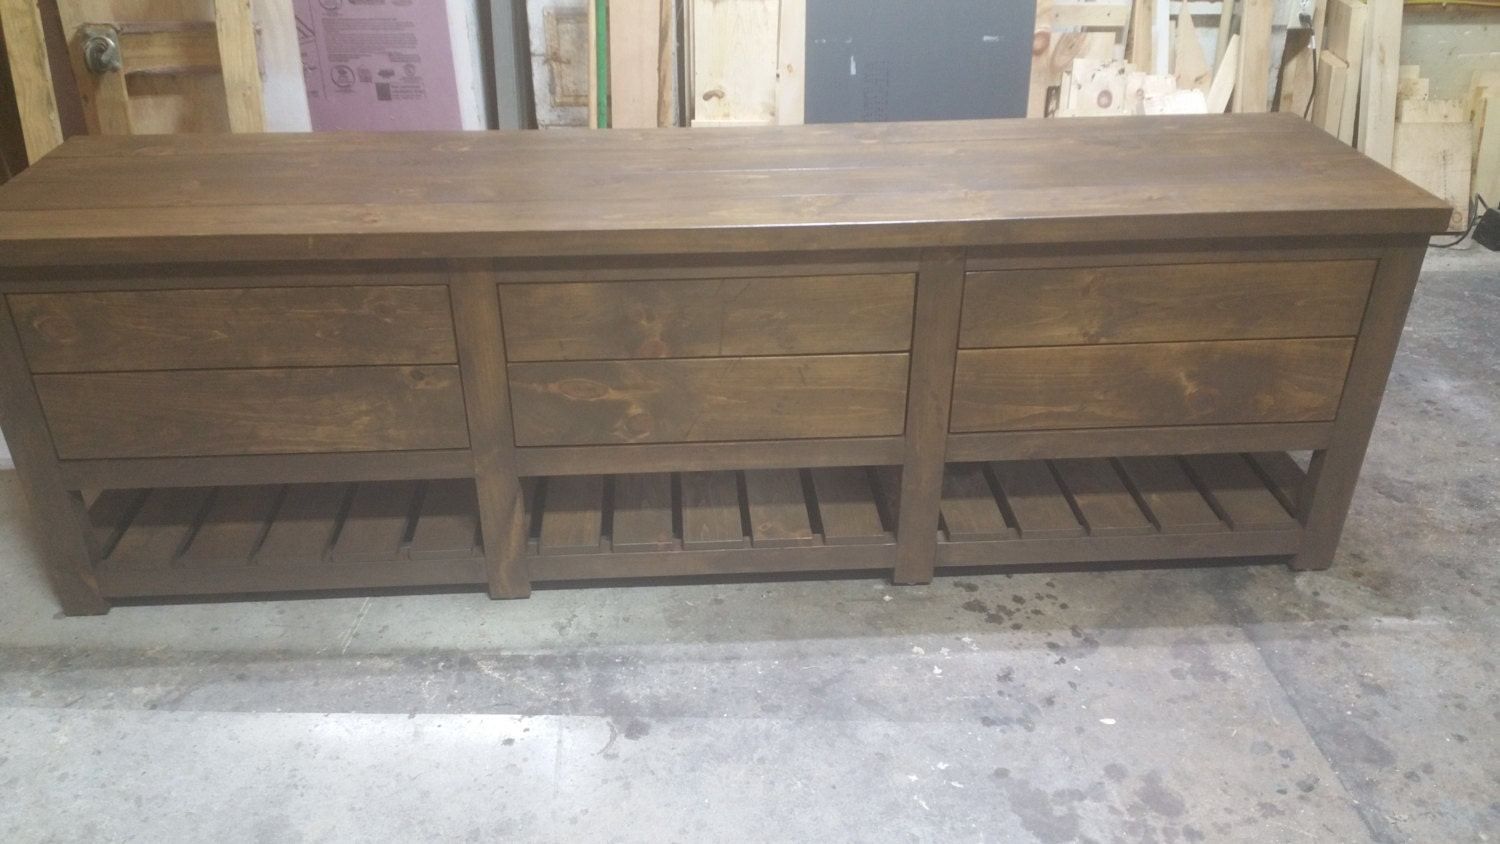 LimitlessWoodworking